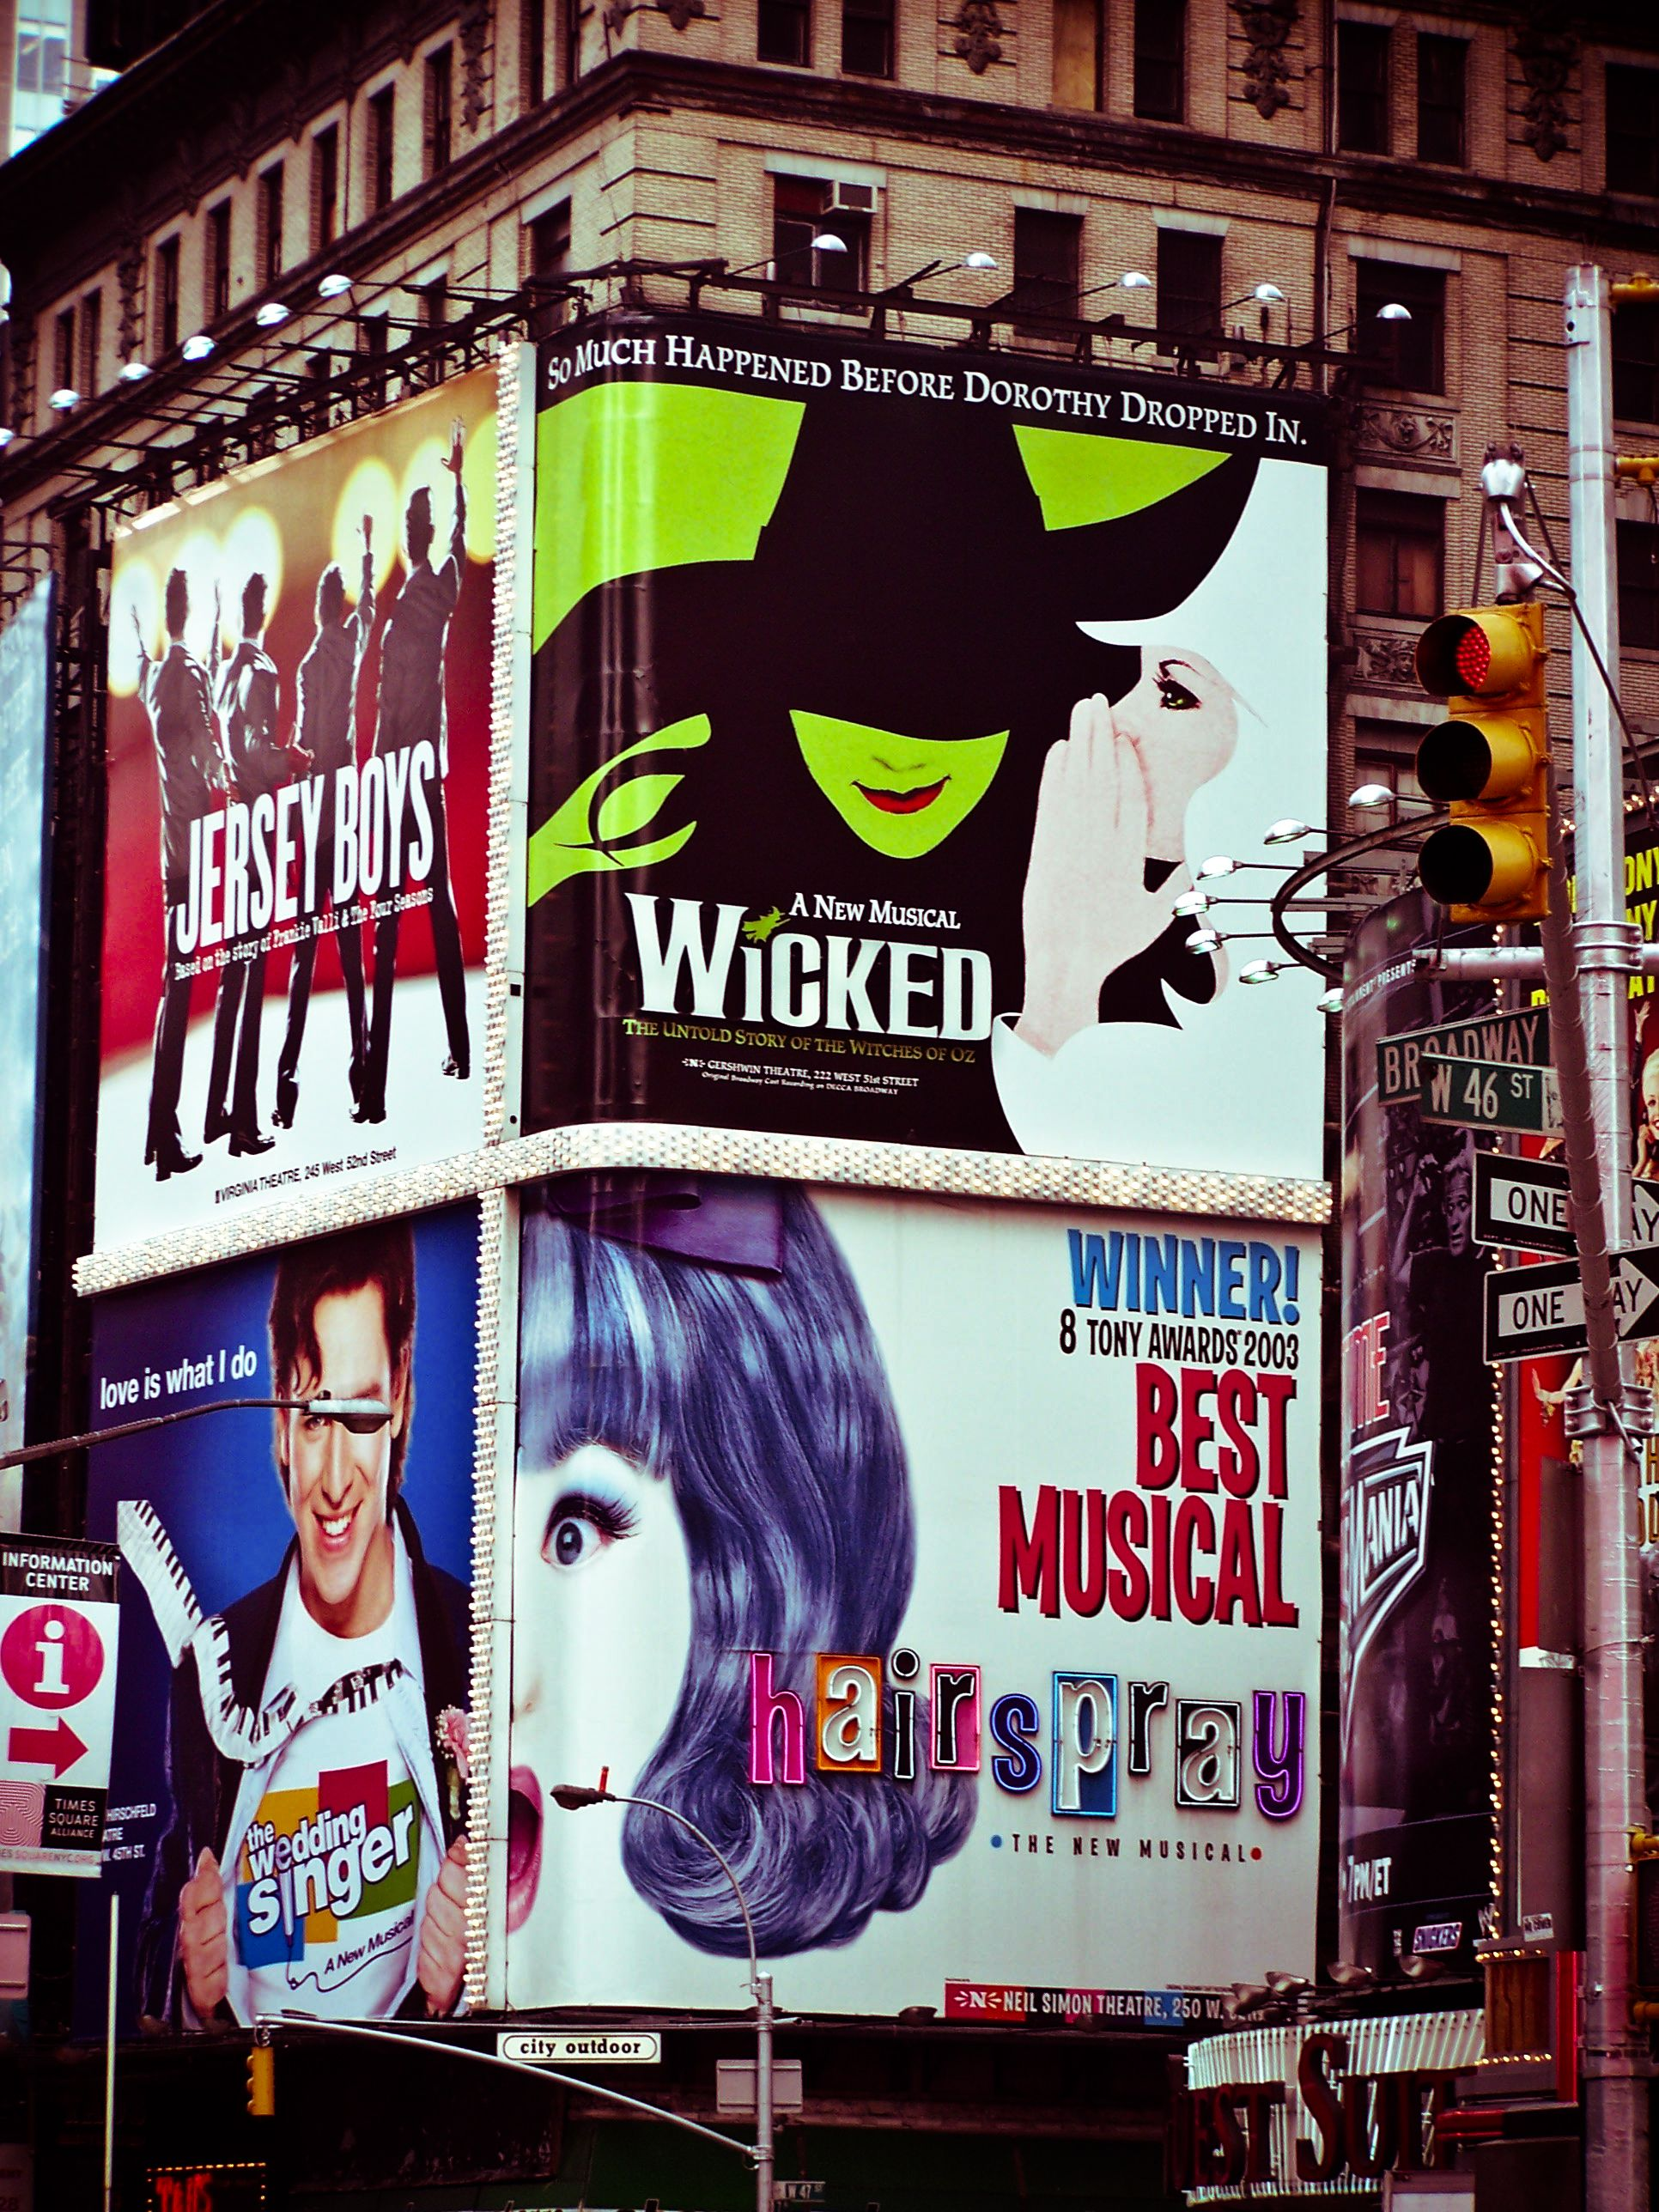 Get Tickets For The Latest Broadway Show While On Vacation